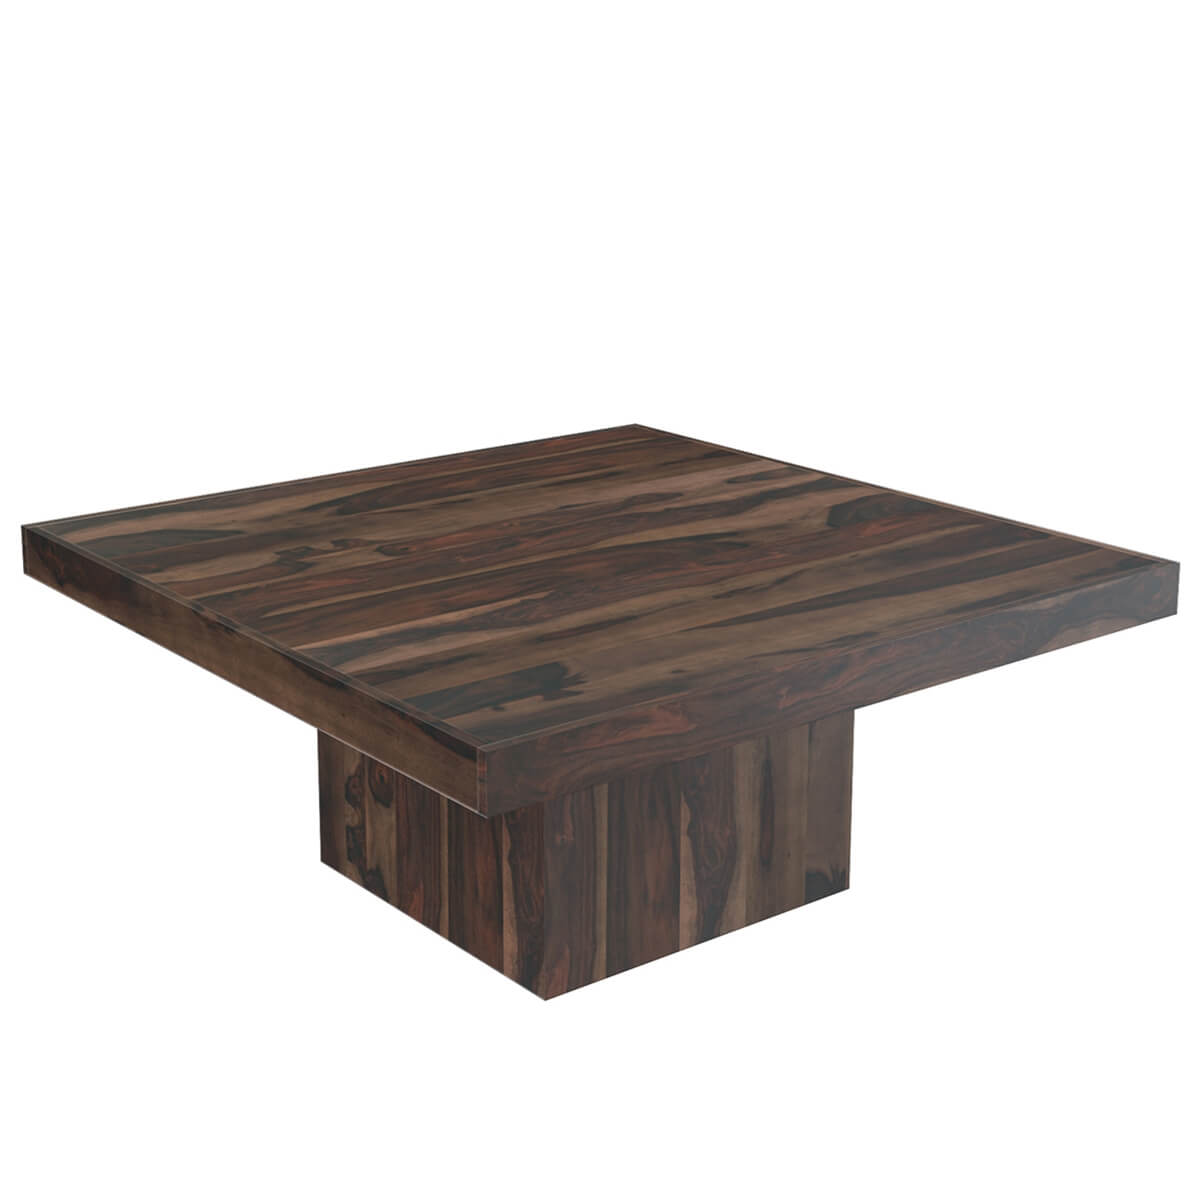 Modern Rustic Solid Wood 64quot Square Pedestal Dining Table  : 69066 from www.sierralivingconcepts.com size 1200 x 1200 jpeg 410kB